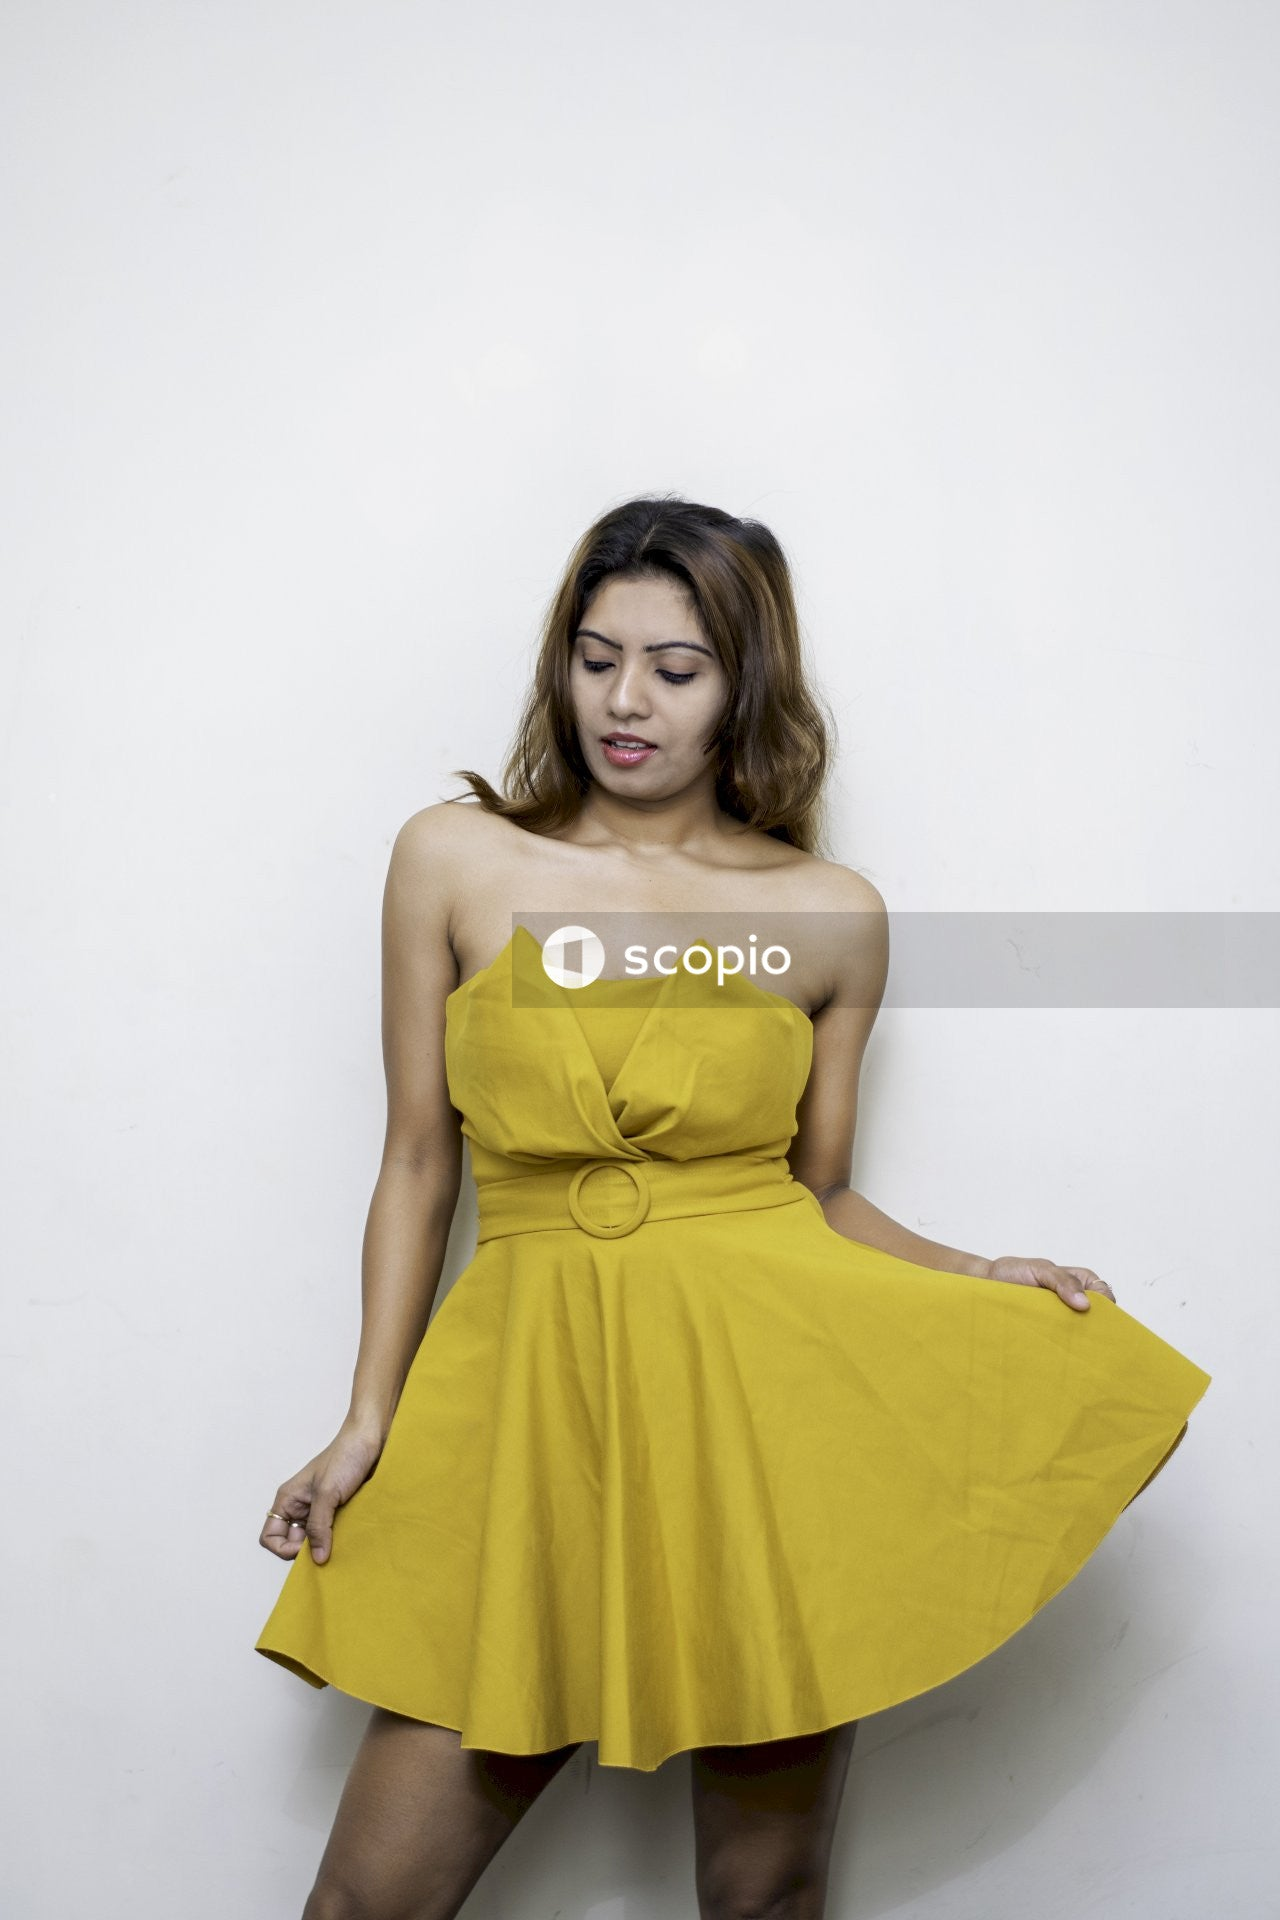 Woman in yellow tube dress